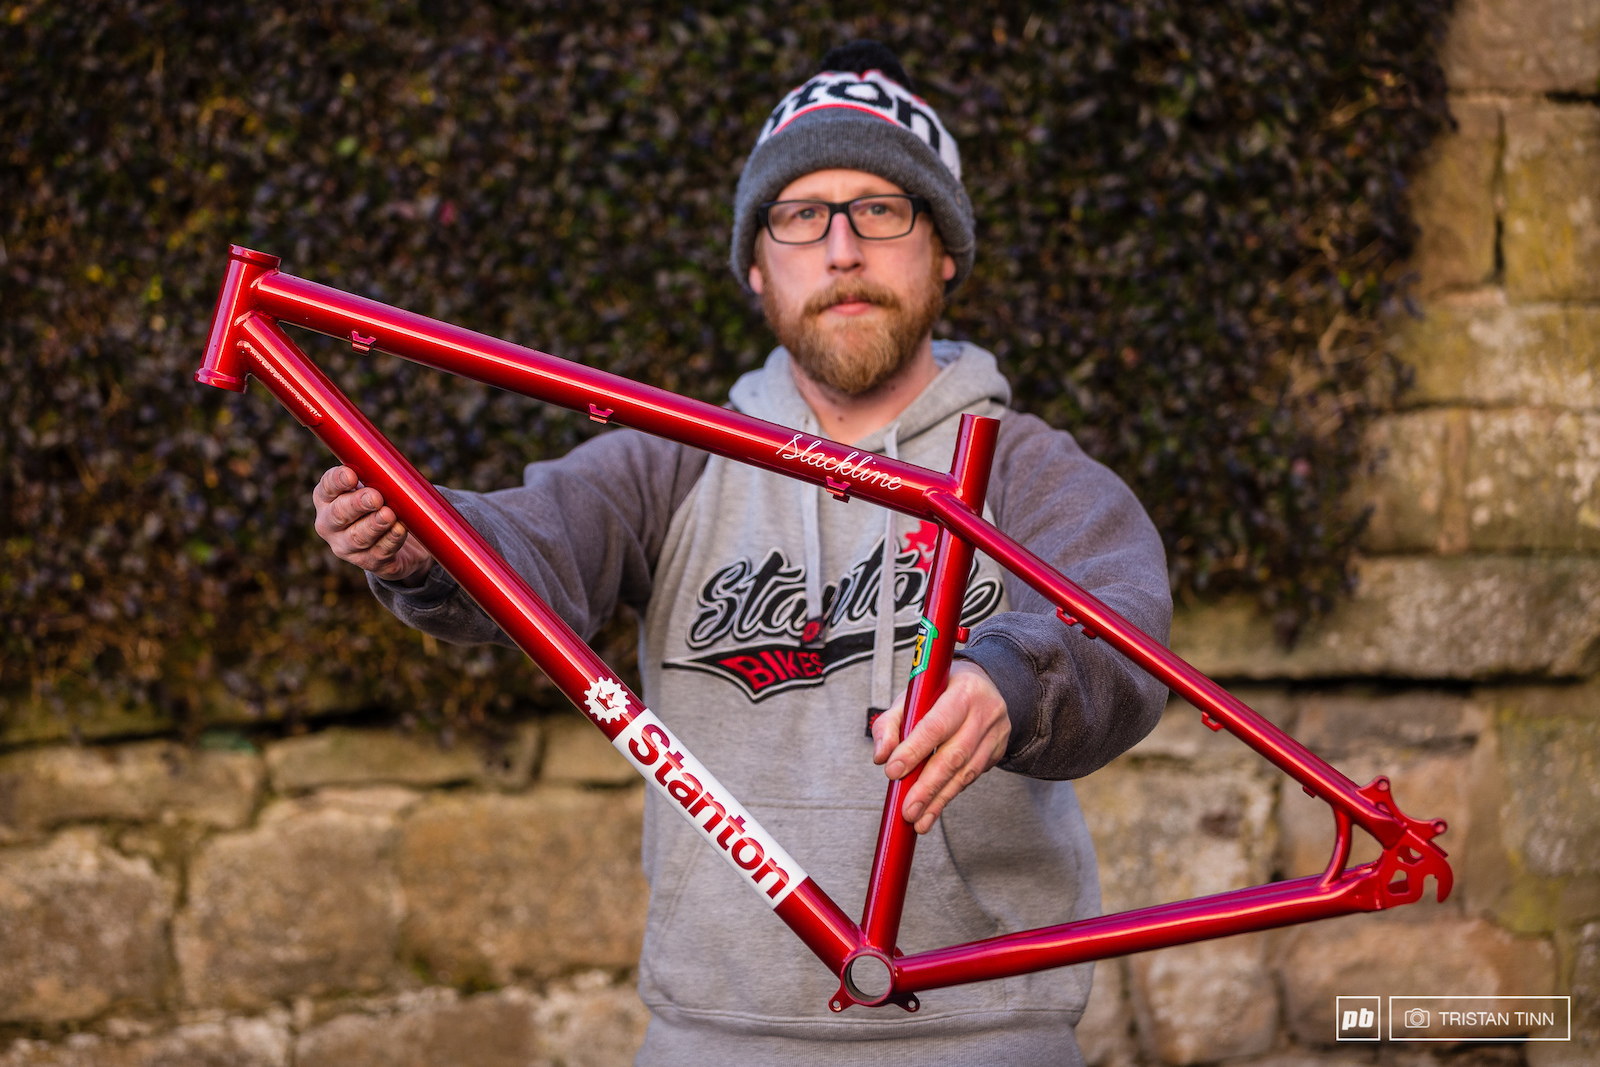 Dan proudly holds out the Slackline which was sent to Dirt being throned 39 Best Hardtail Frame 39 of the year